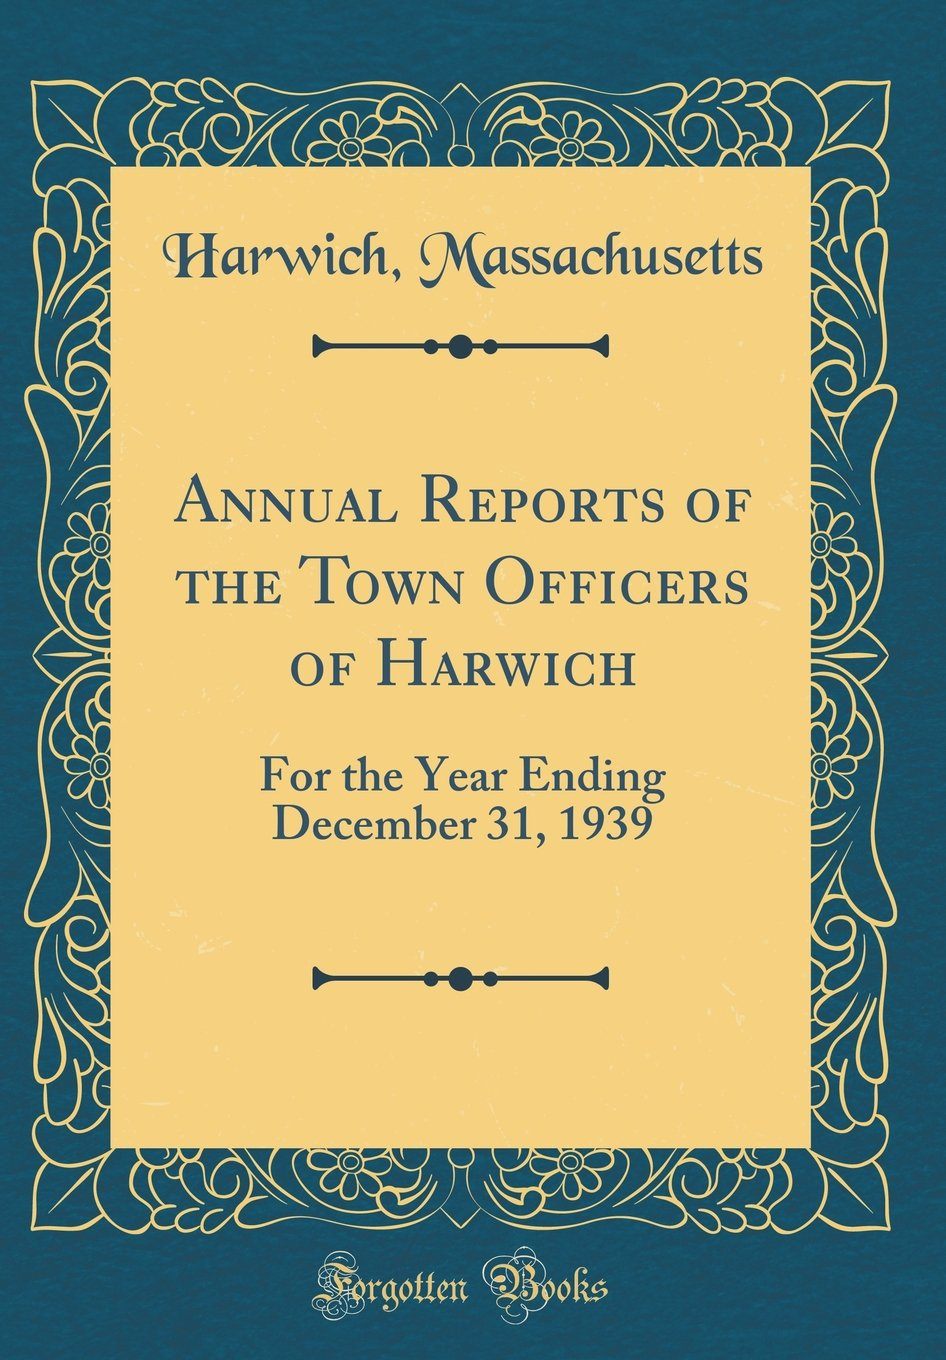 Download Annual Reports of the Town Officers of Harwich: For the Year Ending December 31, 1939 (Classic Reprint) ebook